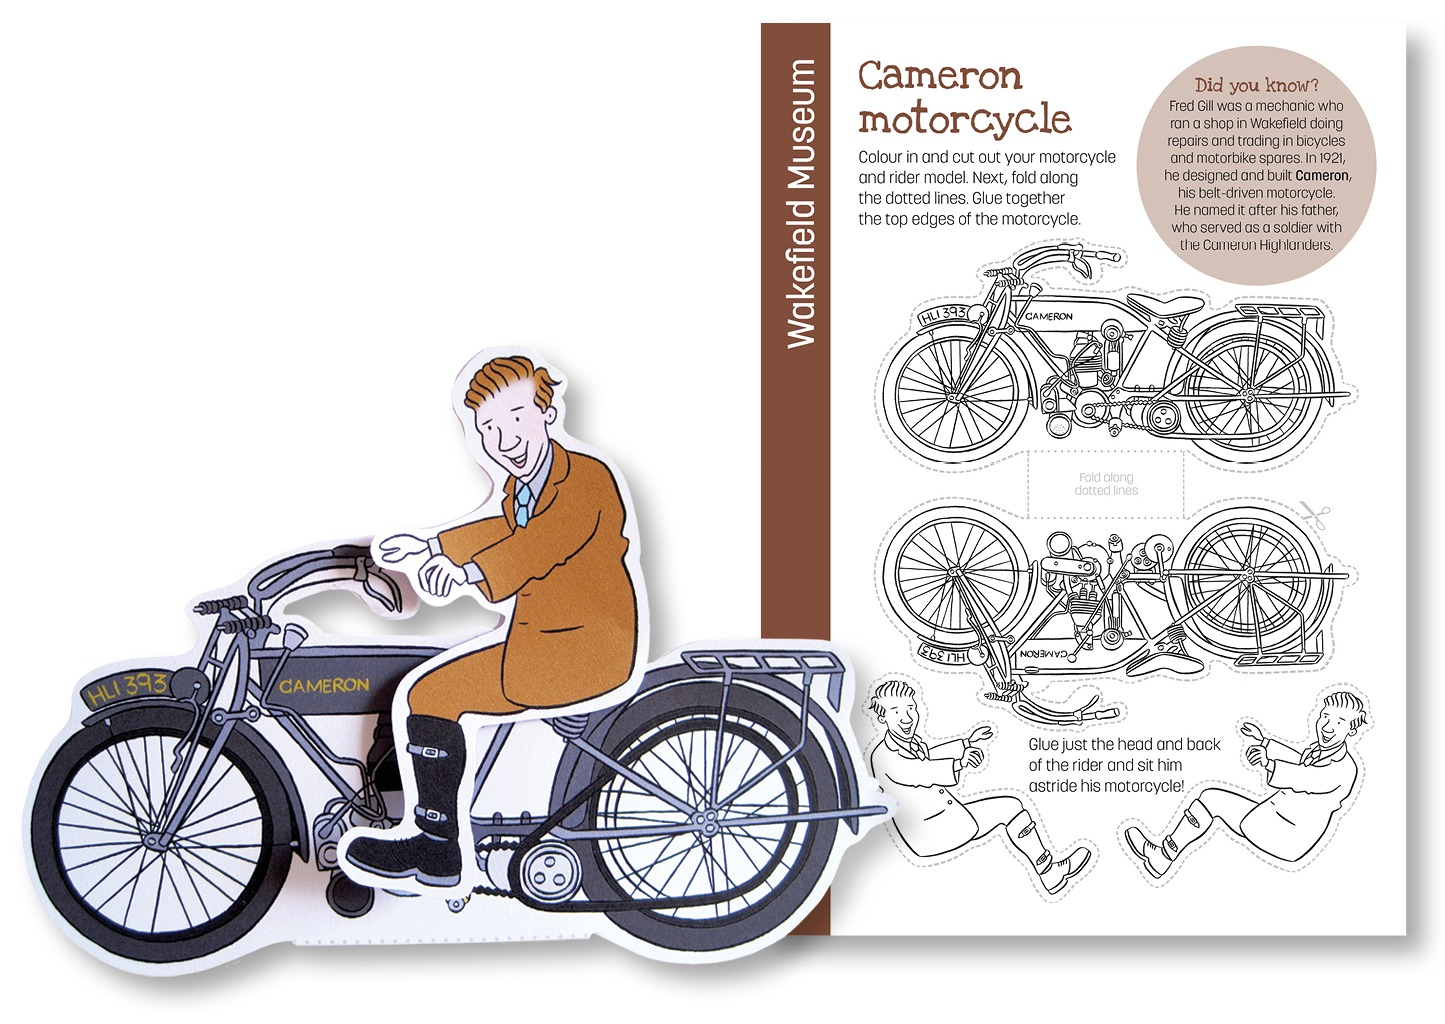 Blackbird Publishing Wakefield Museum Colouring Papercraft Activity Sheet Motorcycle and Rider Model